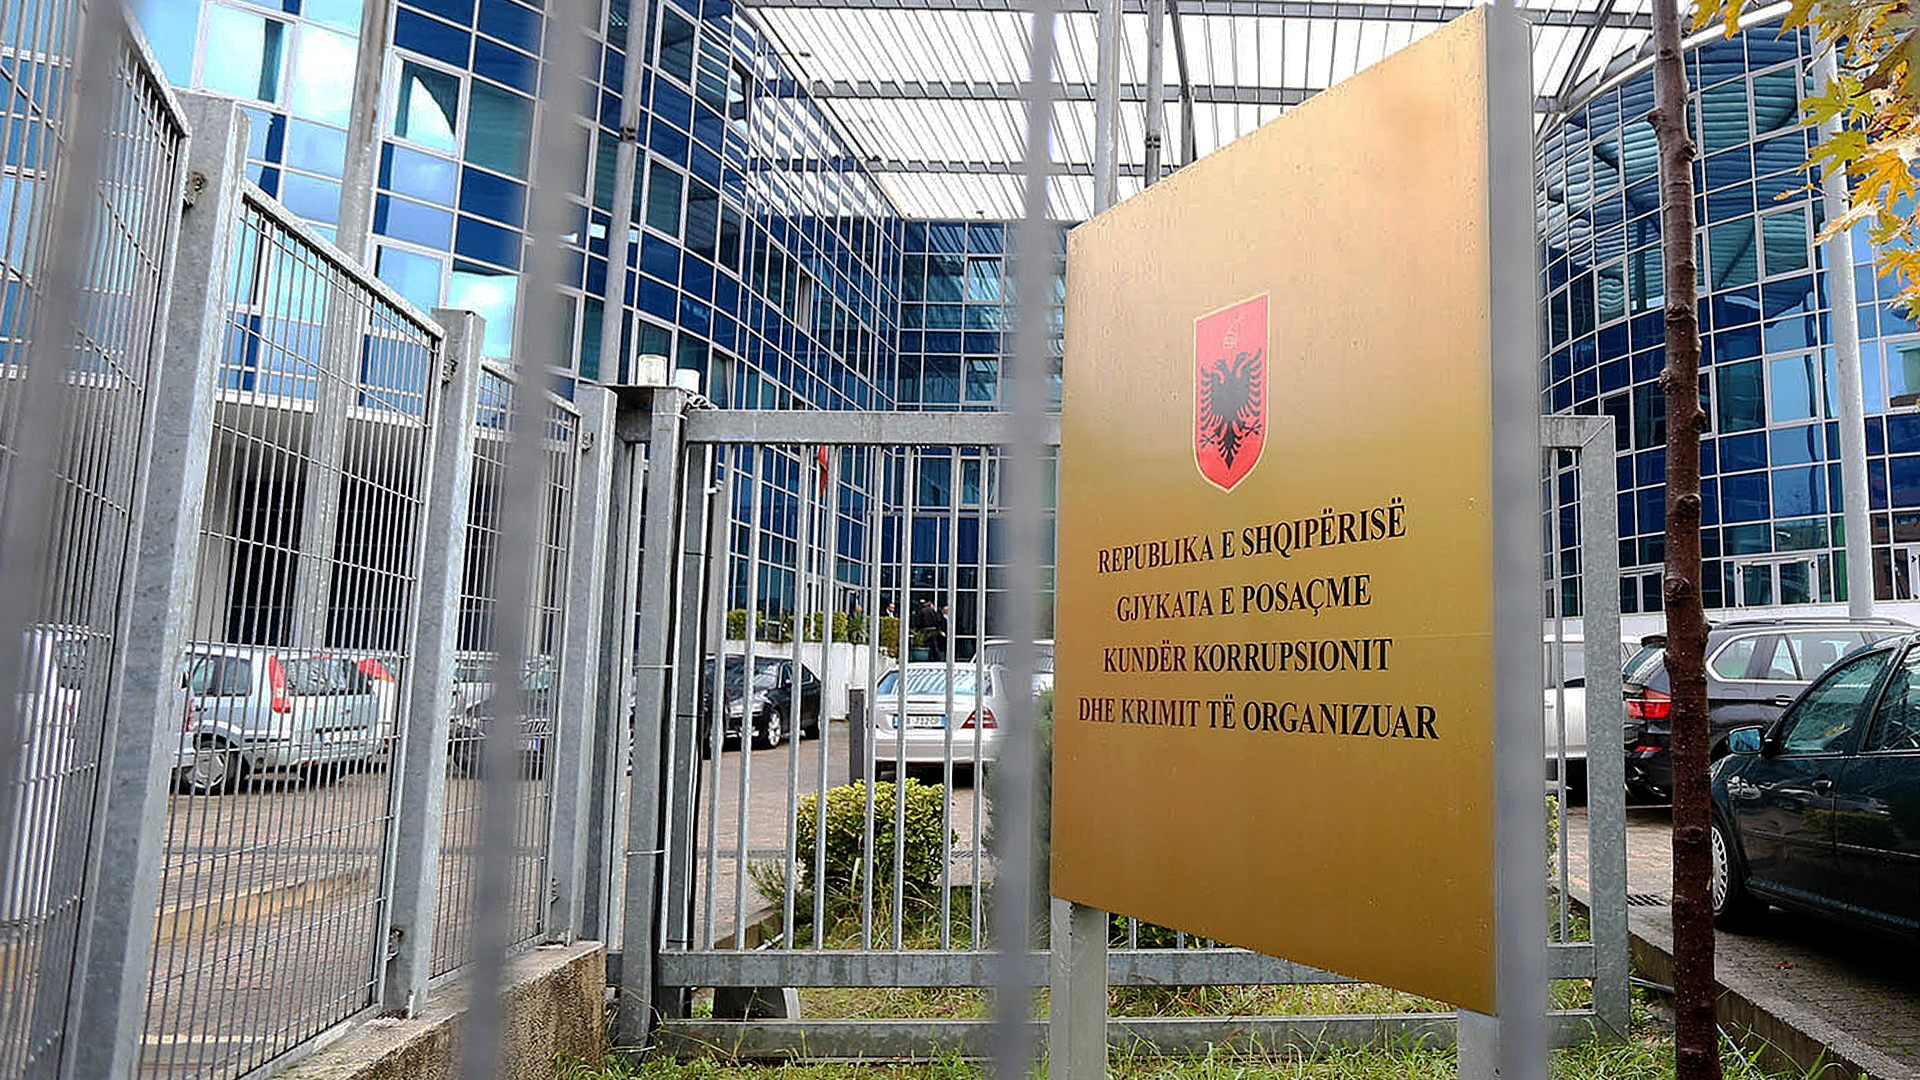 Albanian Special Anti-Corruption Office Investigating EUR 1.5 Million Government Food Aid Tender